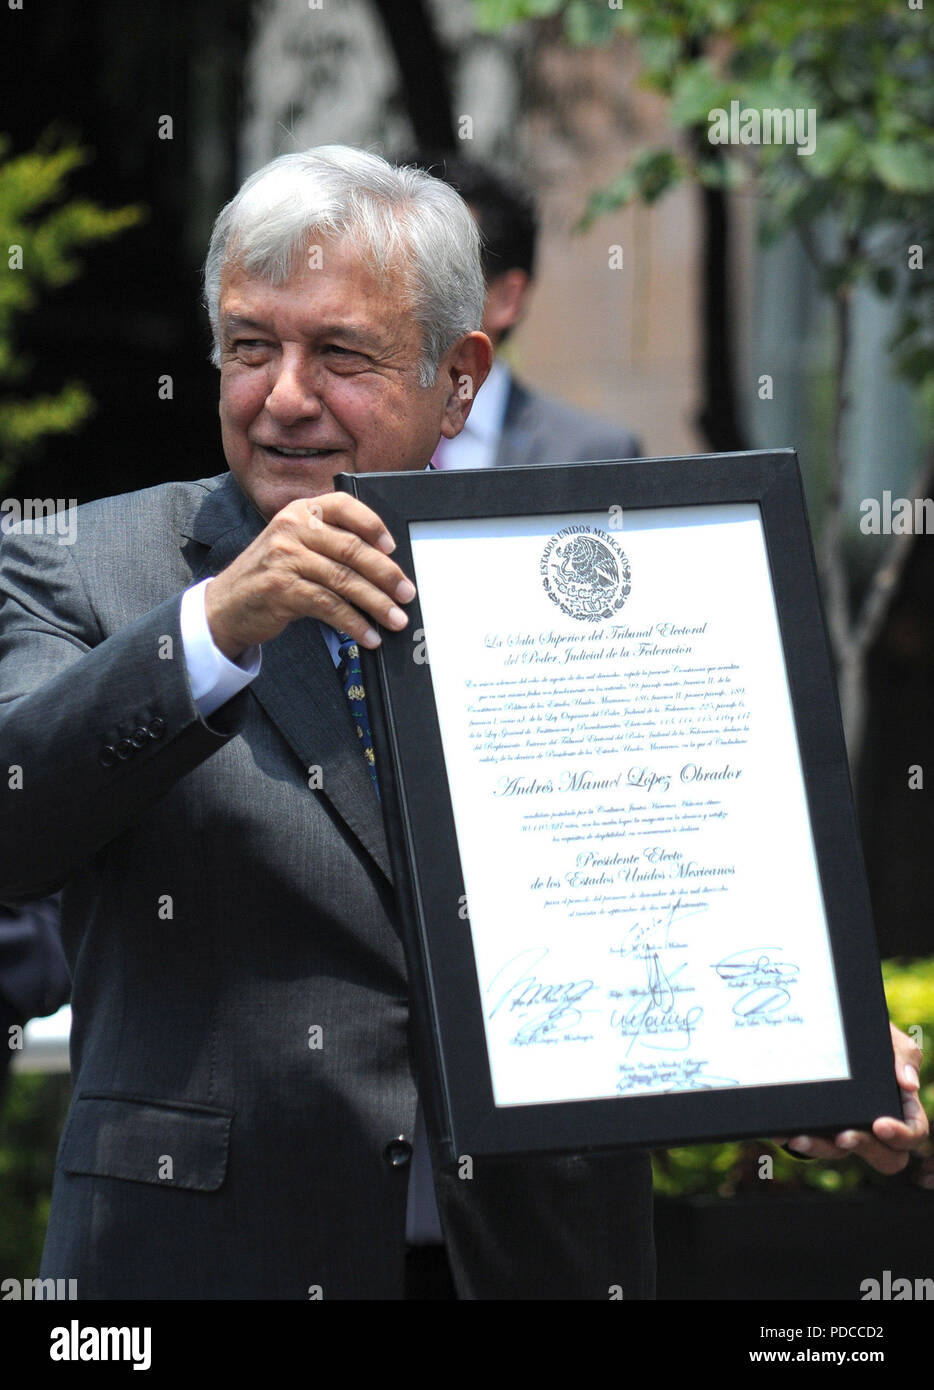 Mexico City, Mexico. 8th August, 2018. Mexican President-elect Andres Manuel Lopez Obrador shows his majority certificate as he arrives at the Electoral Court of the Federation's Judicial Power, in Mexico City, Mexico, 08 August 2018. The Court validated the Mexican election and Obrador's victory. EFE/Mario Guzman Credit: EFE News Agency/Alamy Live News Stock Photo